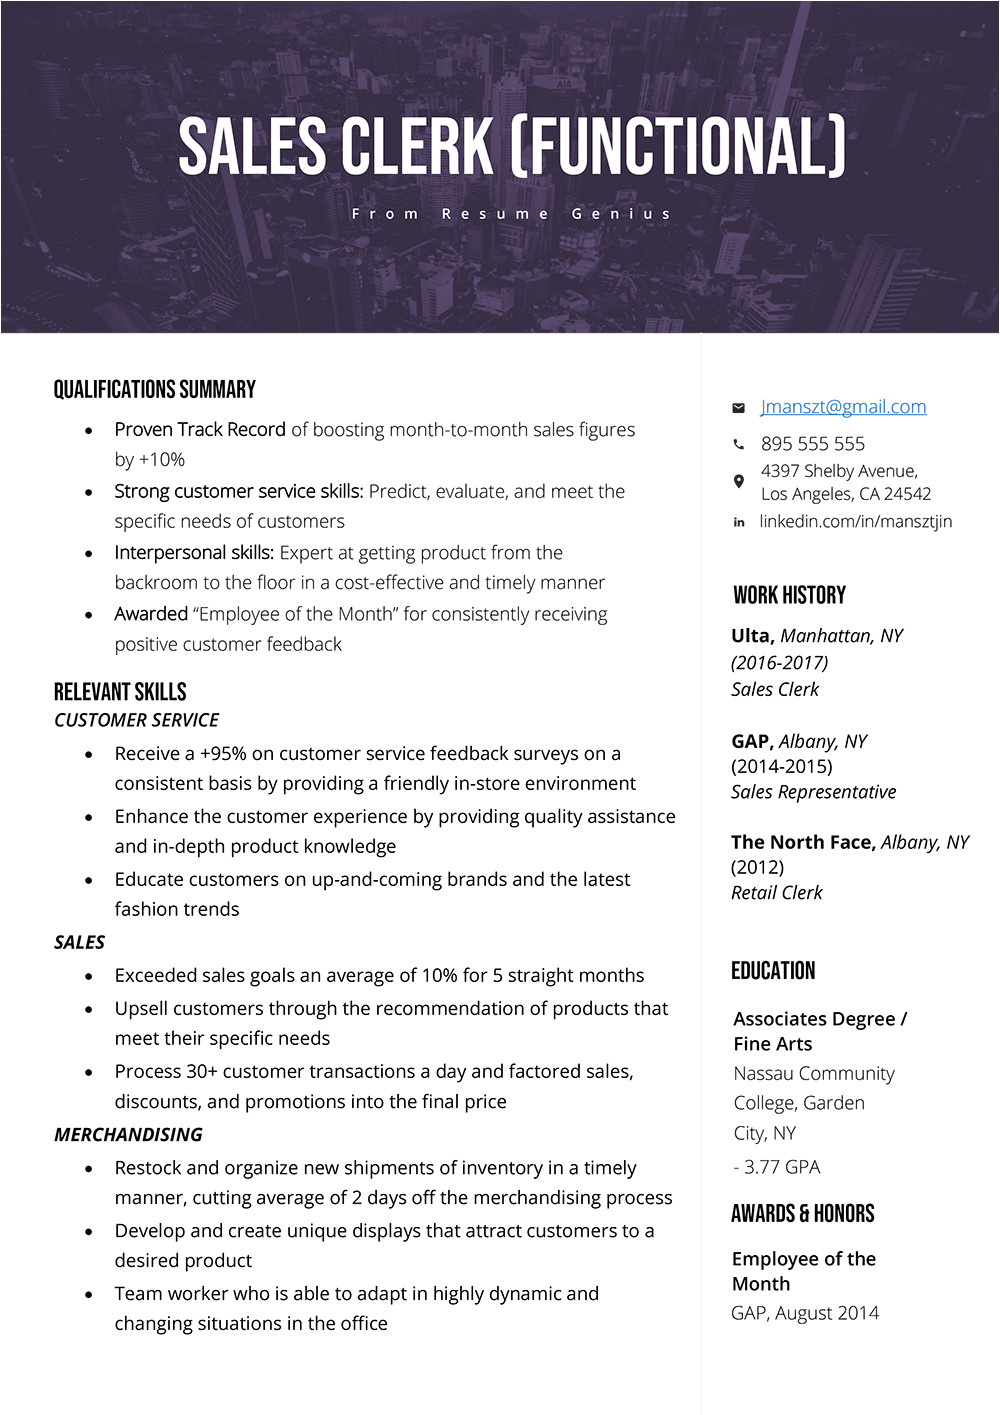 Student Resume Skills and Qualifications How to Write A Qualifications Summary Resume Genius